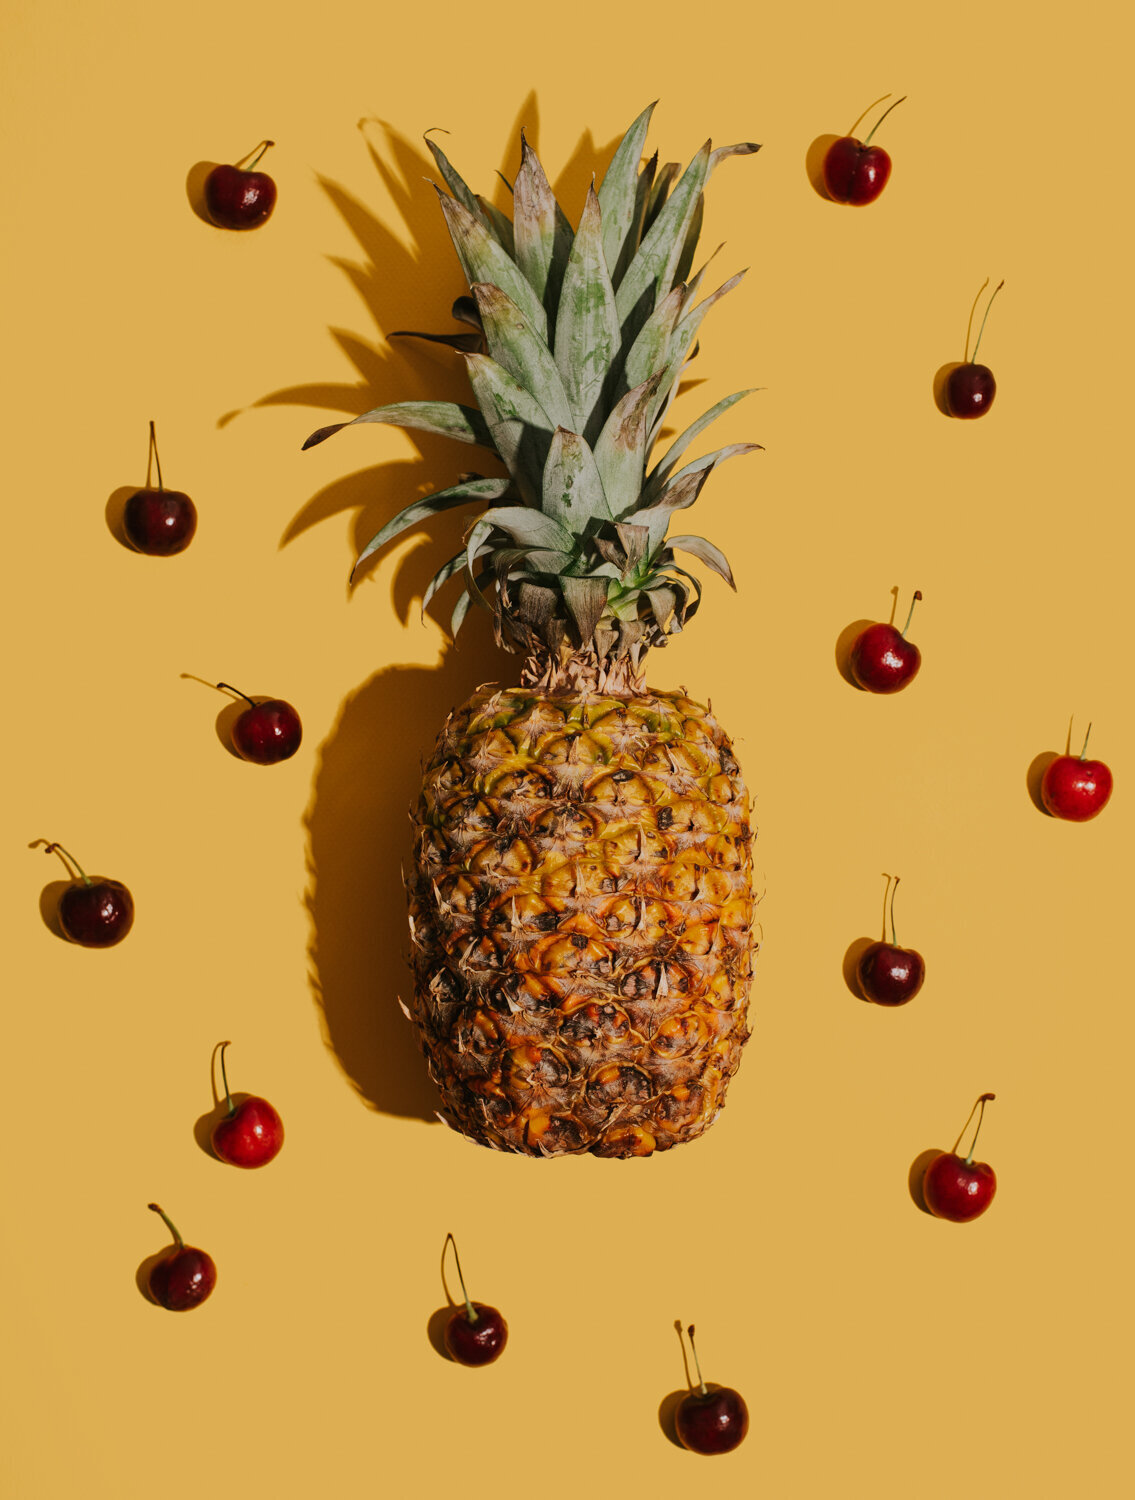 pineapple and cherries on yellow